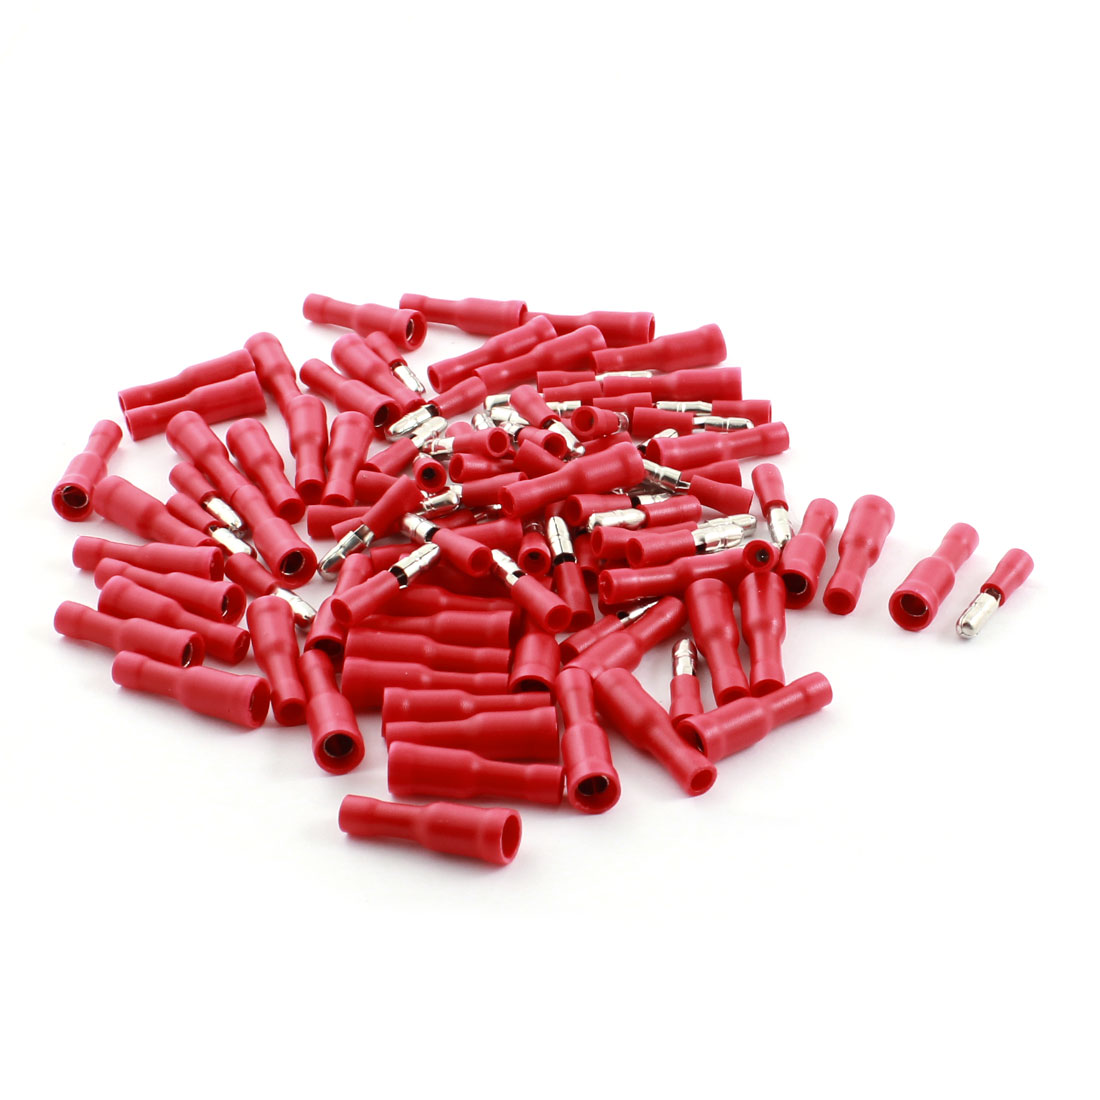 100Pcs FRD2-156 16-14AWG Full Insulated Red Male Female Crimp Terminal Connector